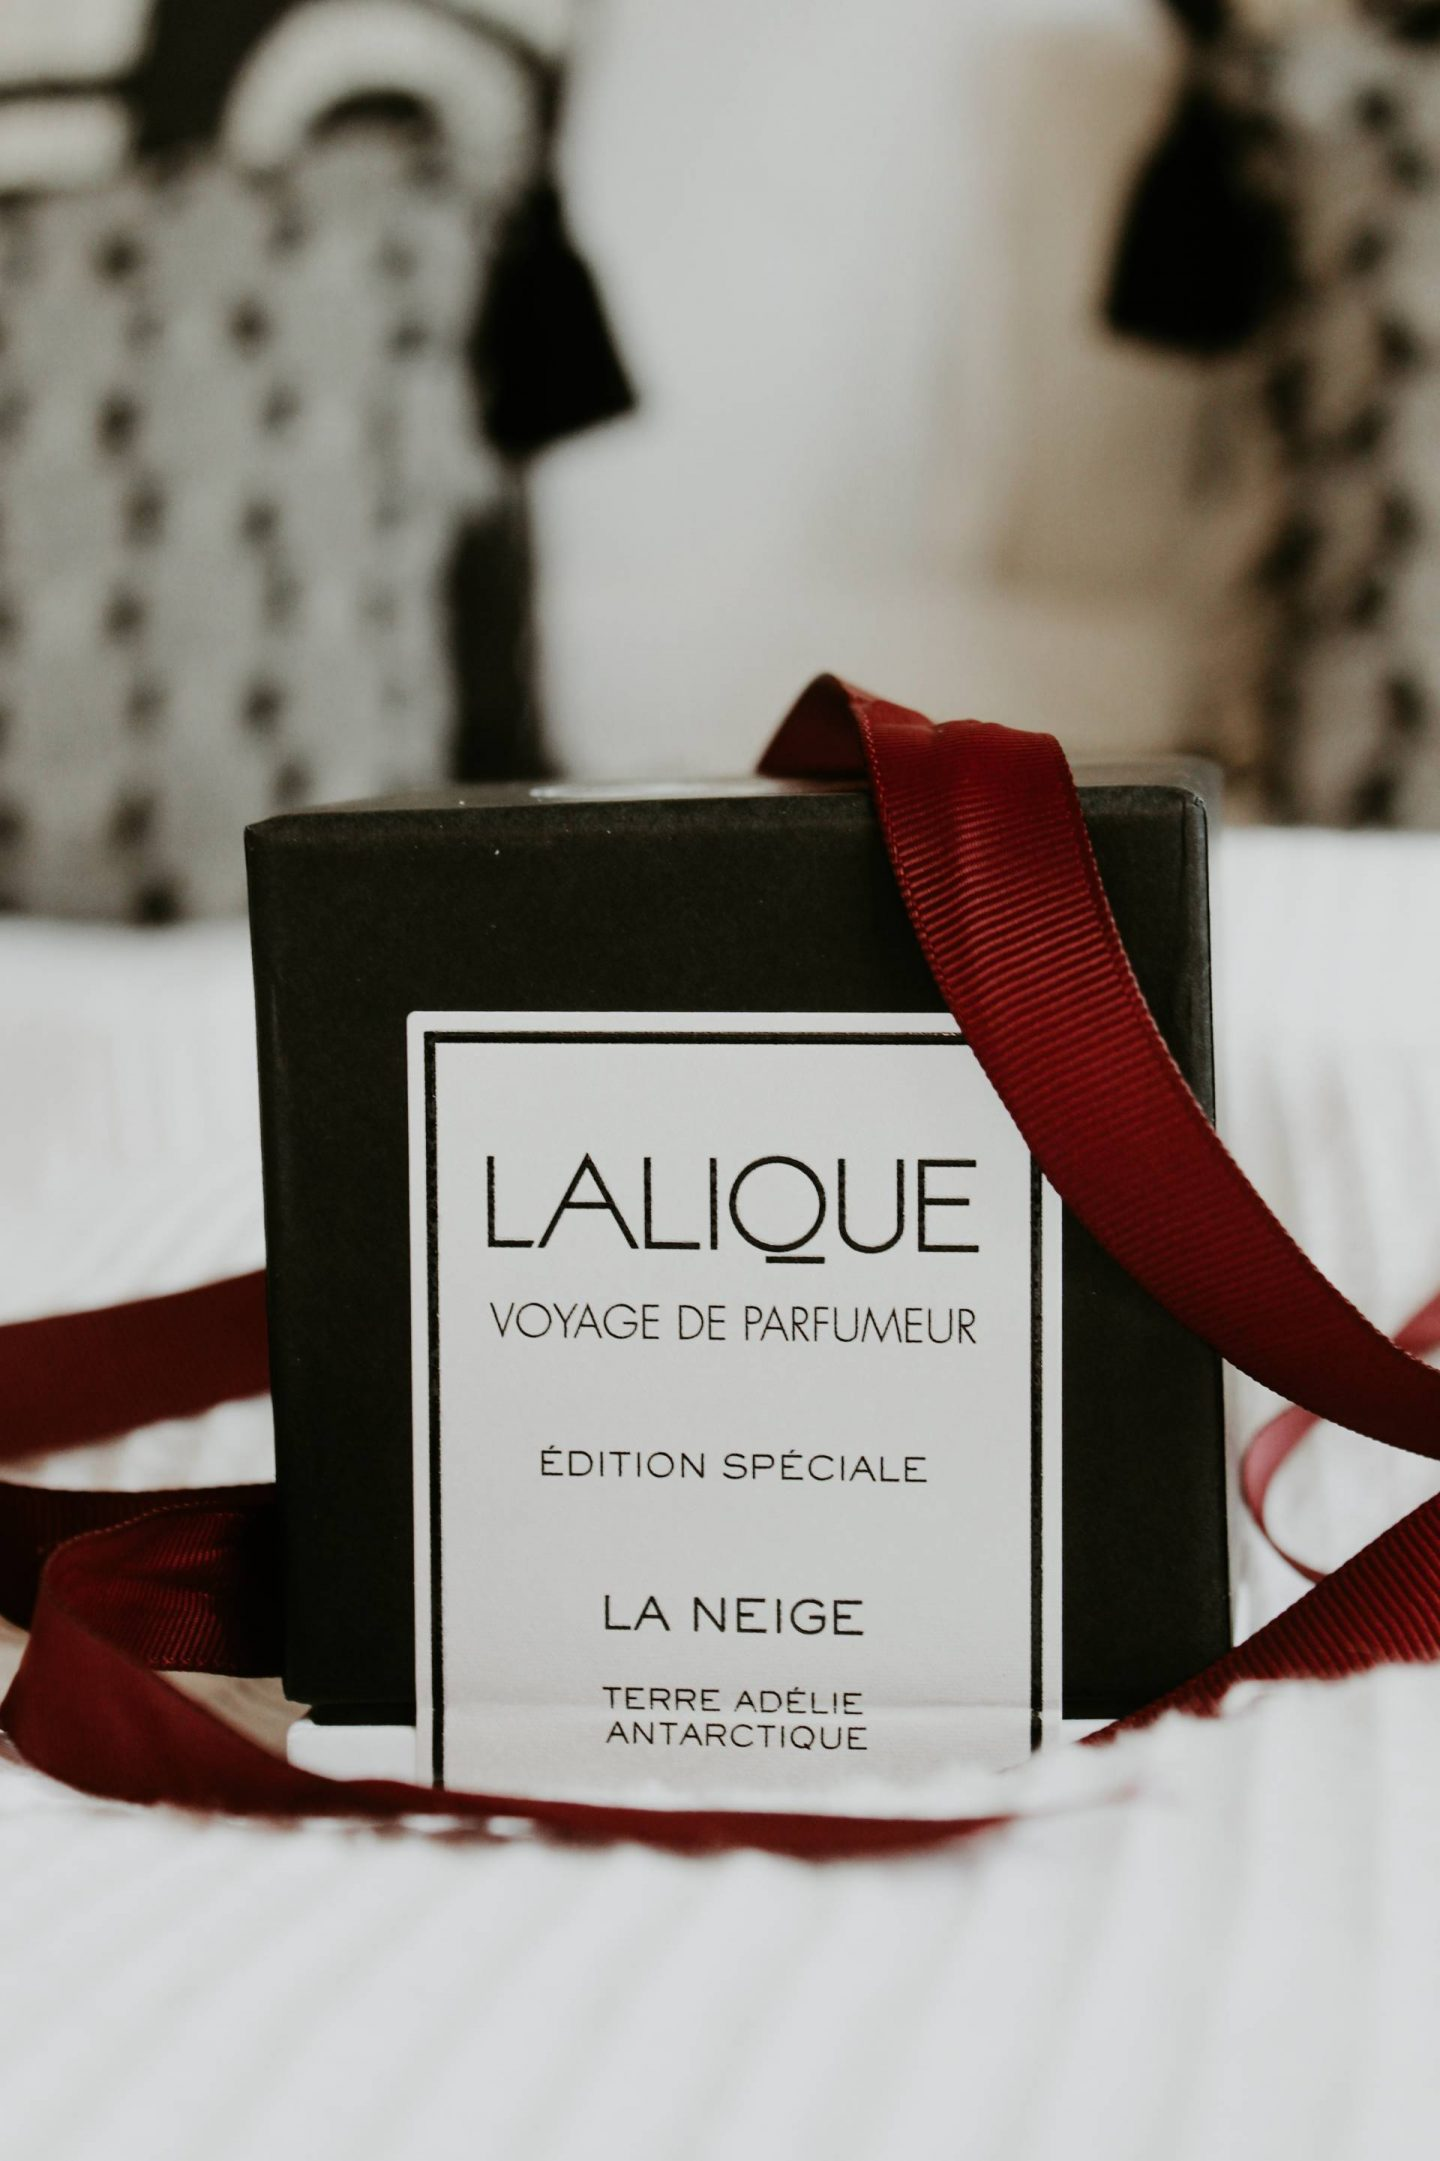 Lalique gift box for La Neige